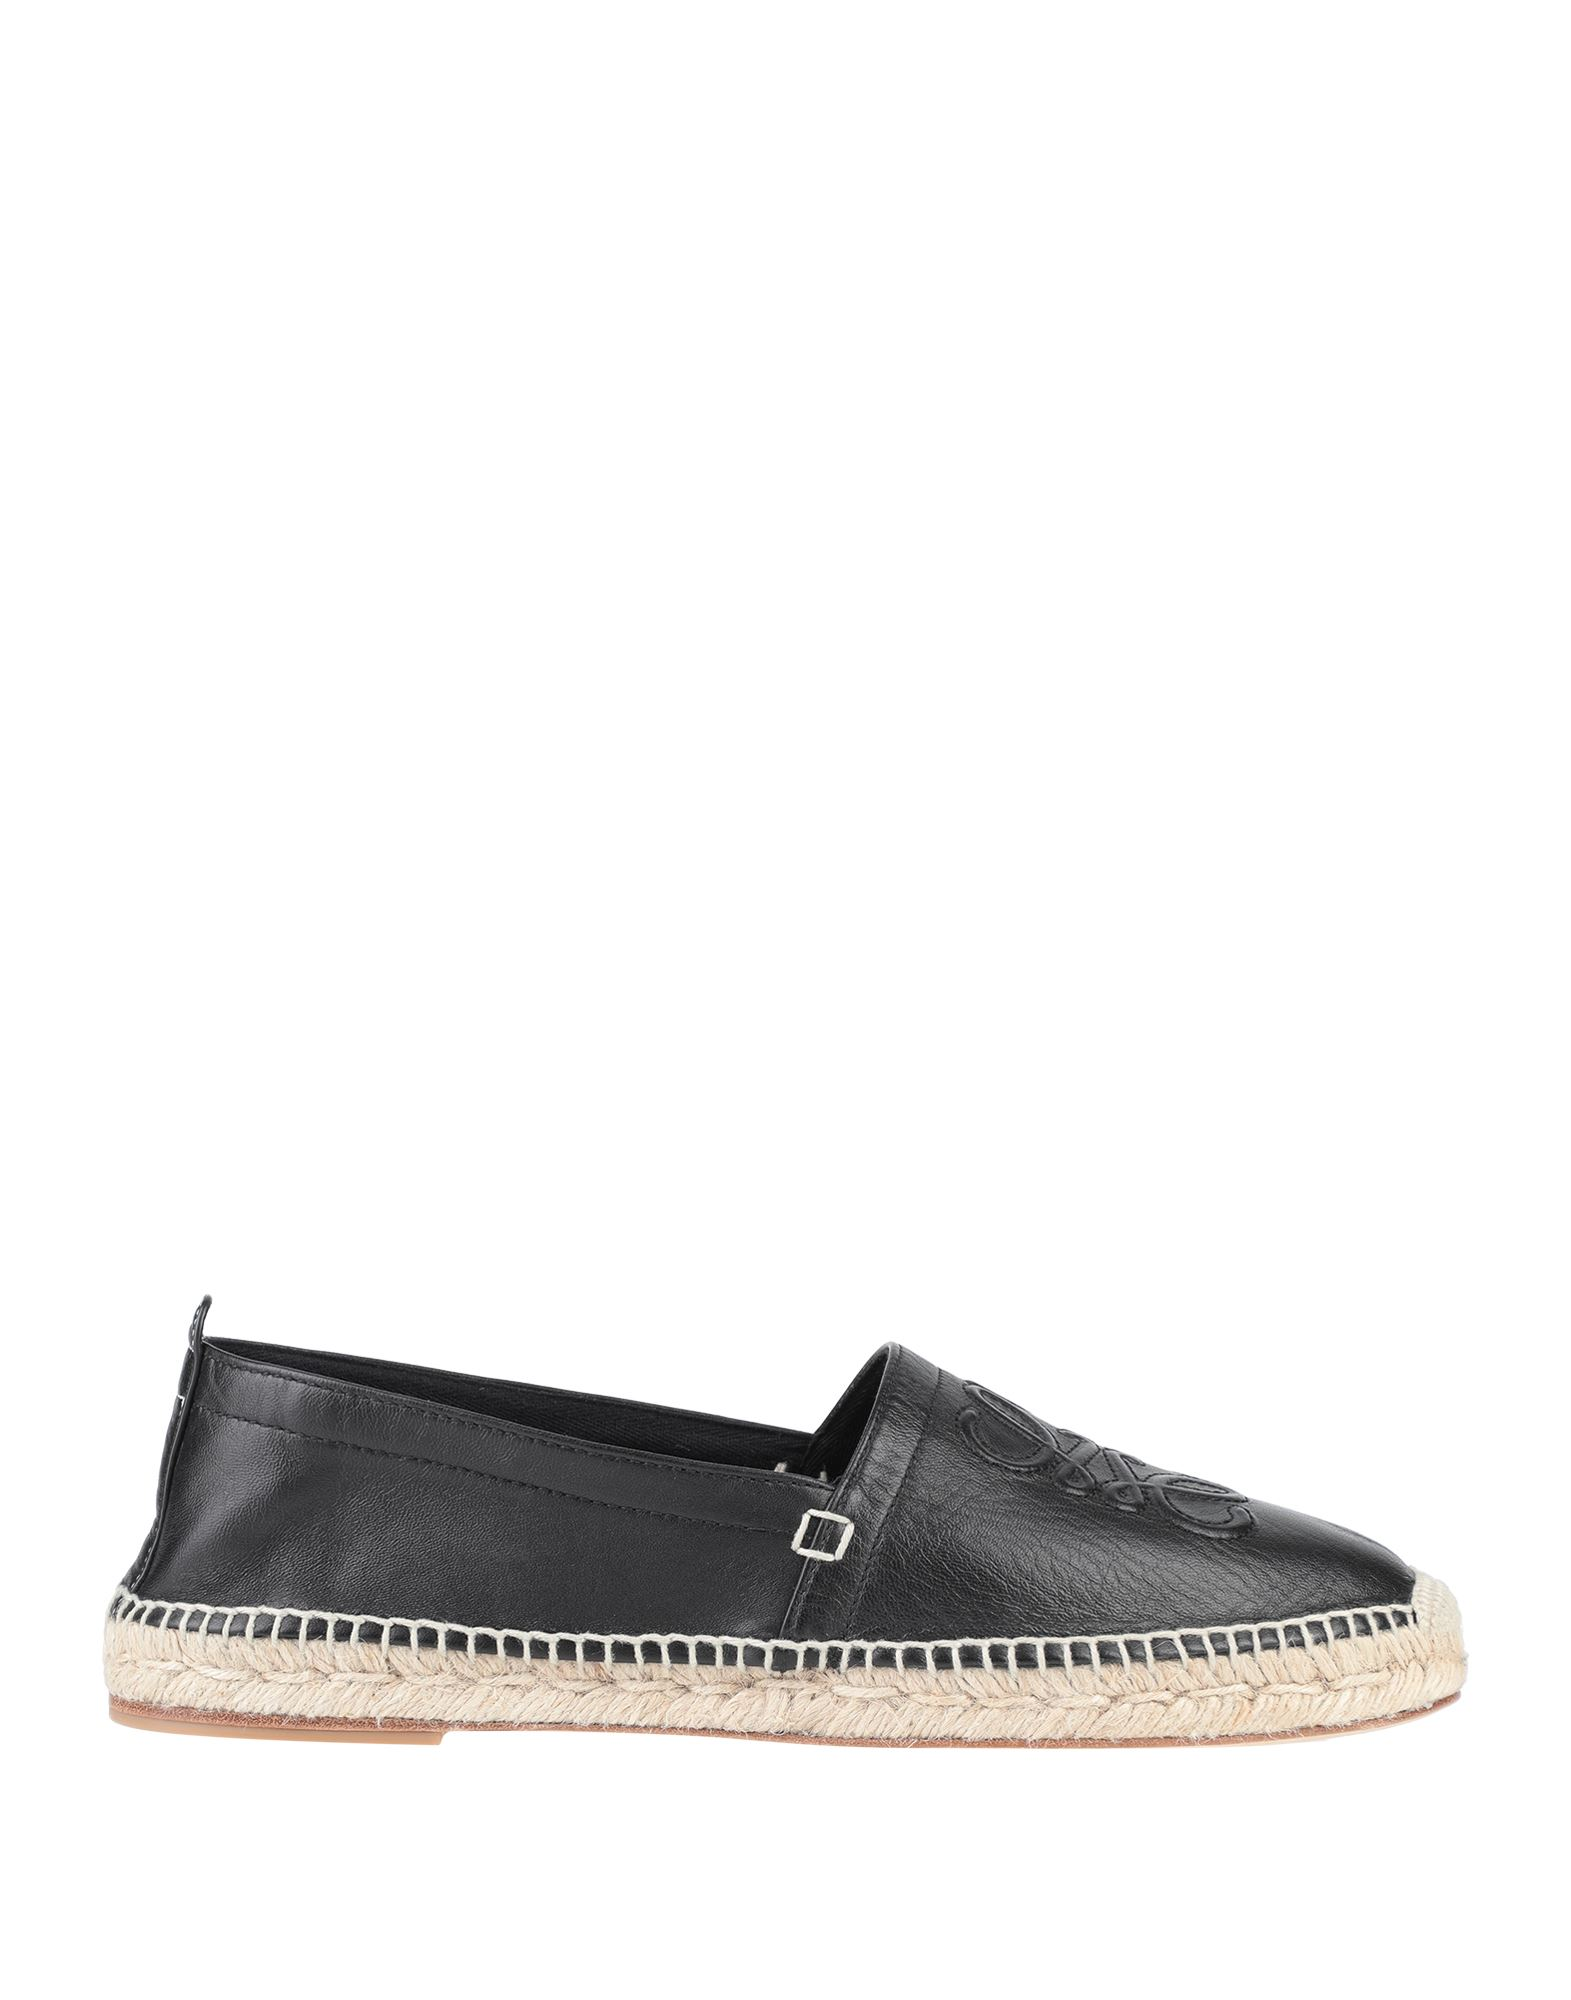 LOEWE Espadrilles. leather, logo, solid color, round toeline, flat, leather lining, leather/rubber sole, contains non-textile parts of animal origin. Soft Leather